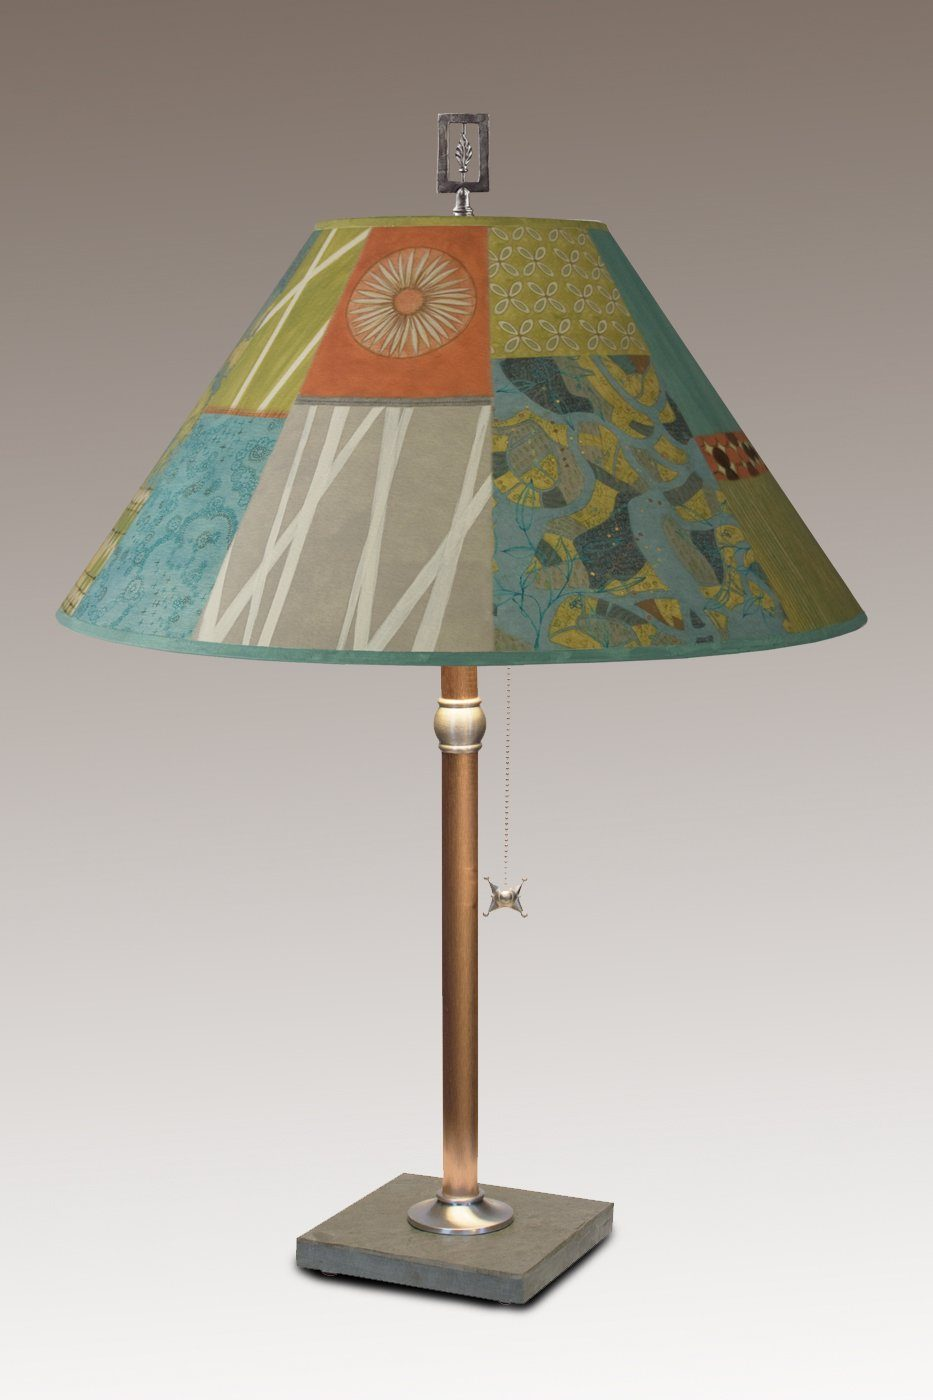 Copper Table Lamp on Vermont Slate with Large Conical Shade in Zest